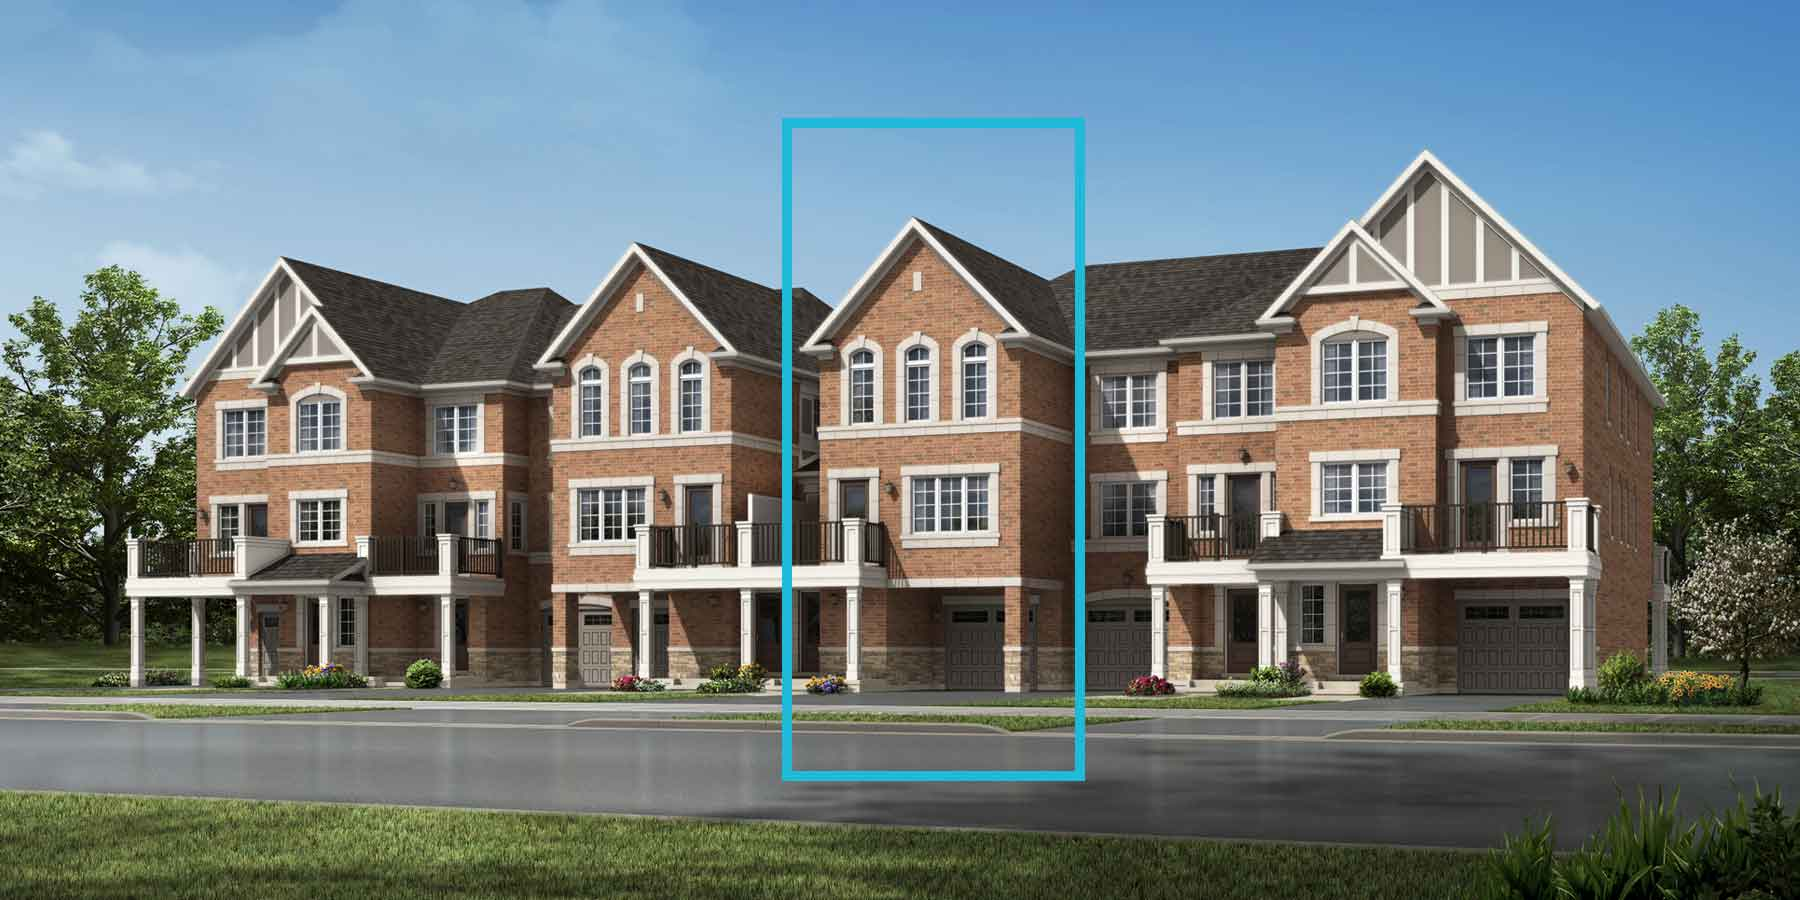 Rossland Plan traditional_seatonwhitevale_rossland_main at Seaton Whitevale in Pickering Ontario by Mattamy Homes